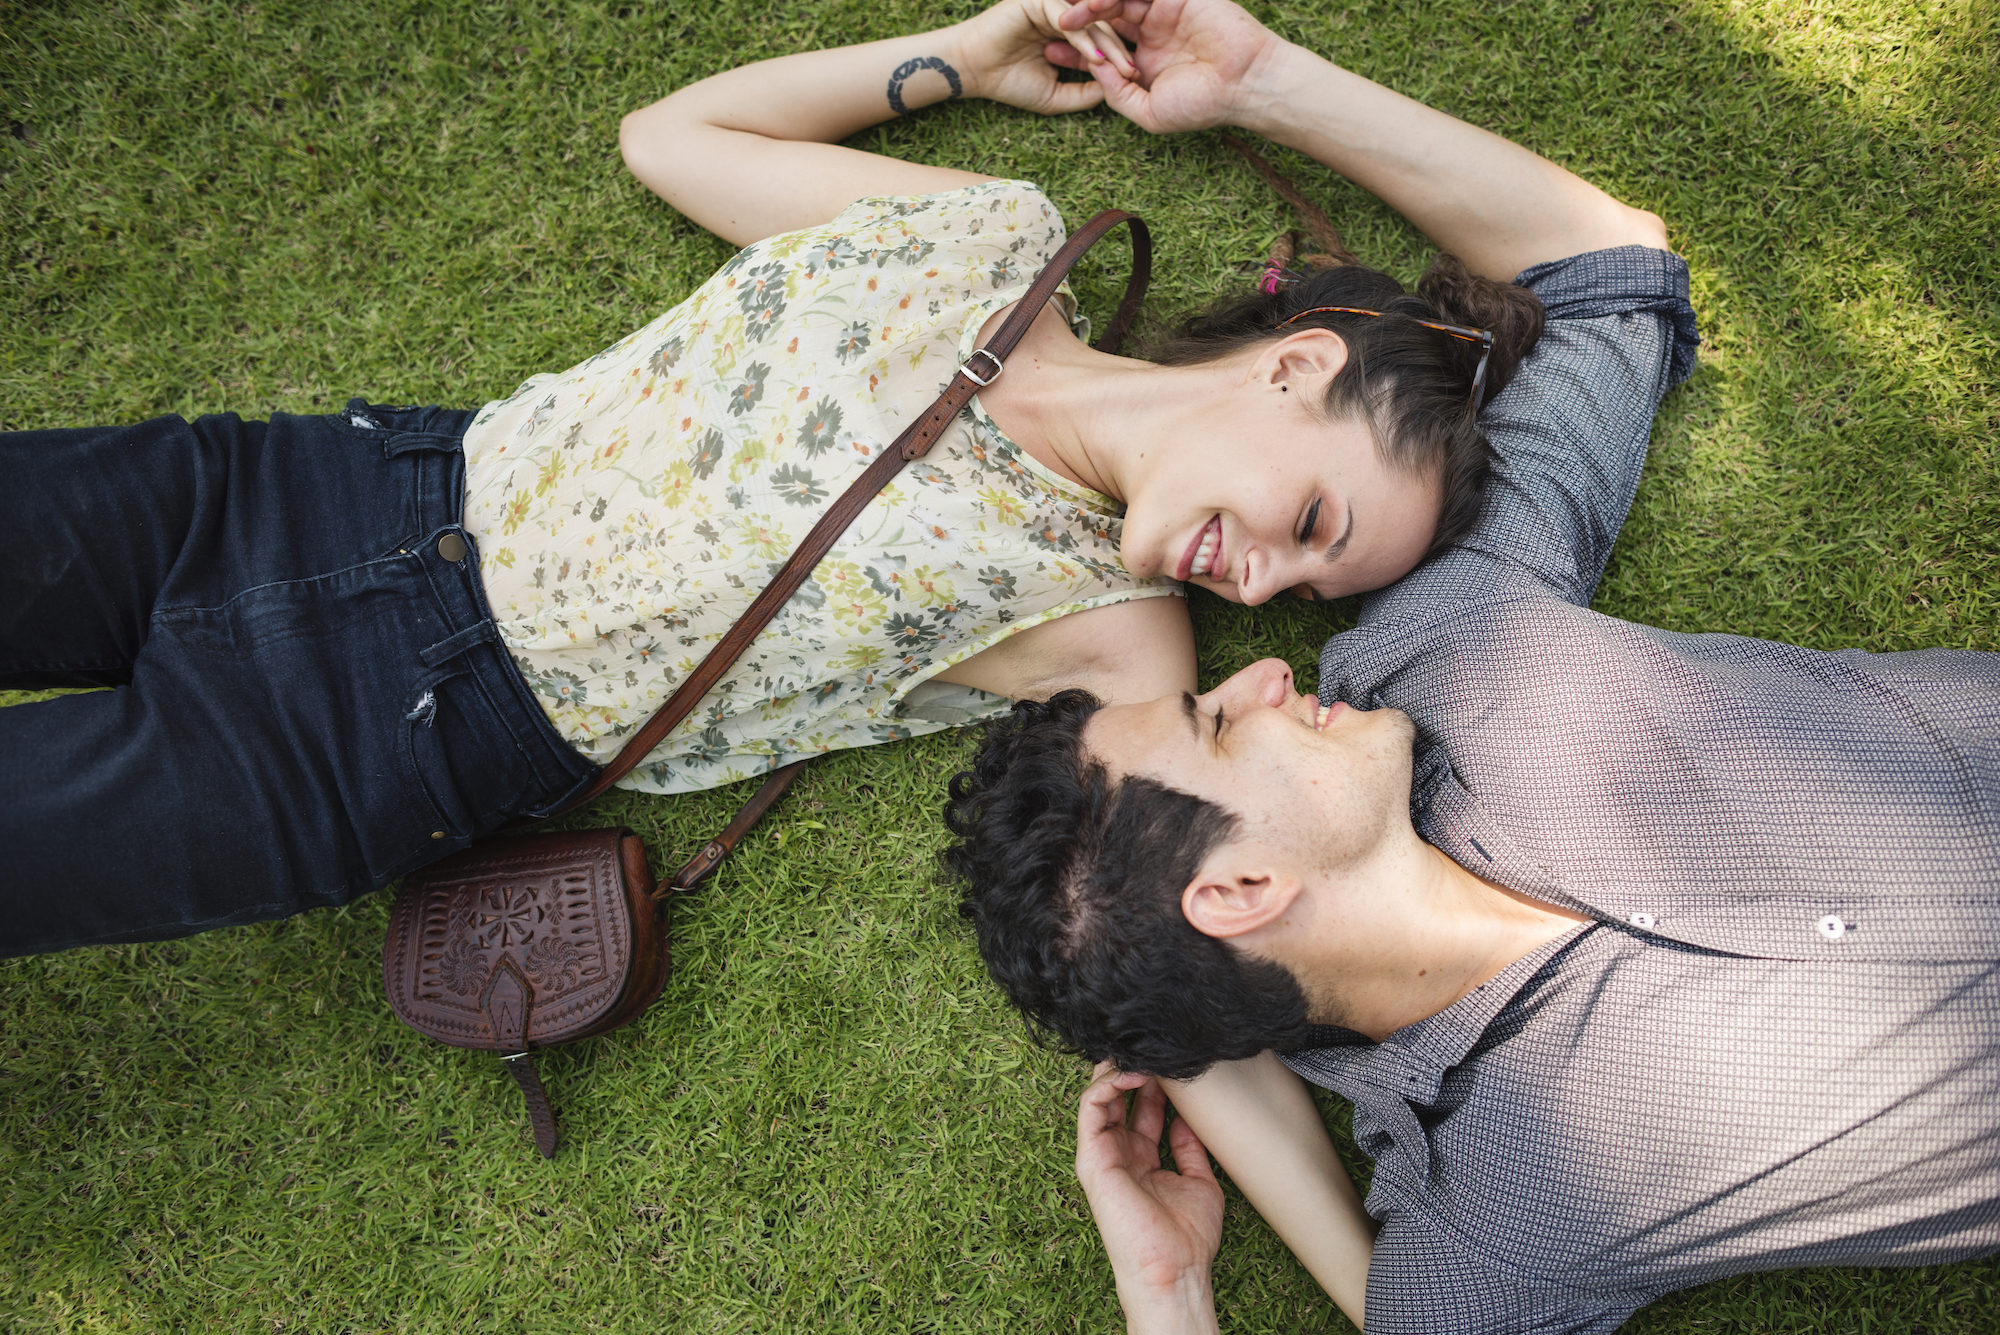 A couple holding hands and smiling at one another while lying on the grass.